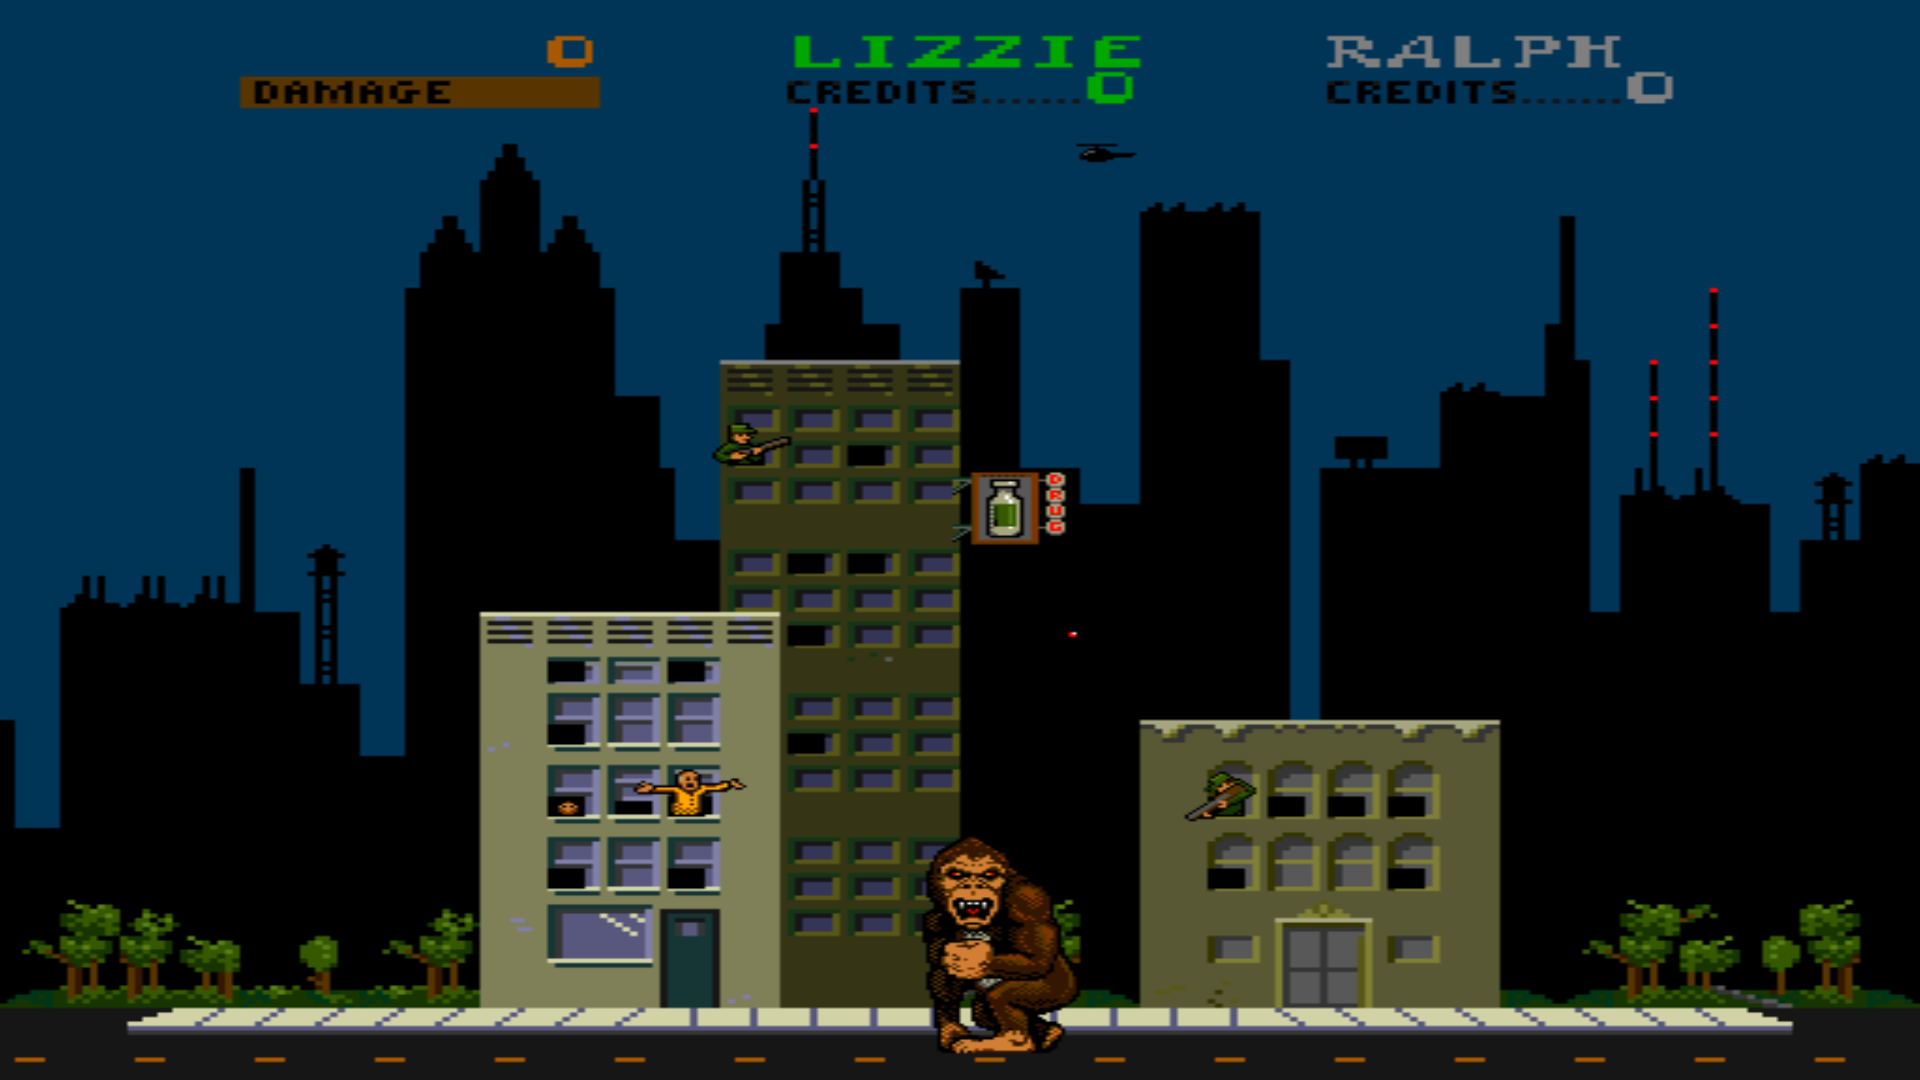 Rampage mame rom   Any working version of Rampage for MAME